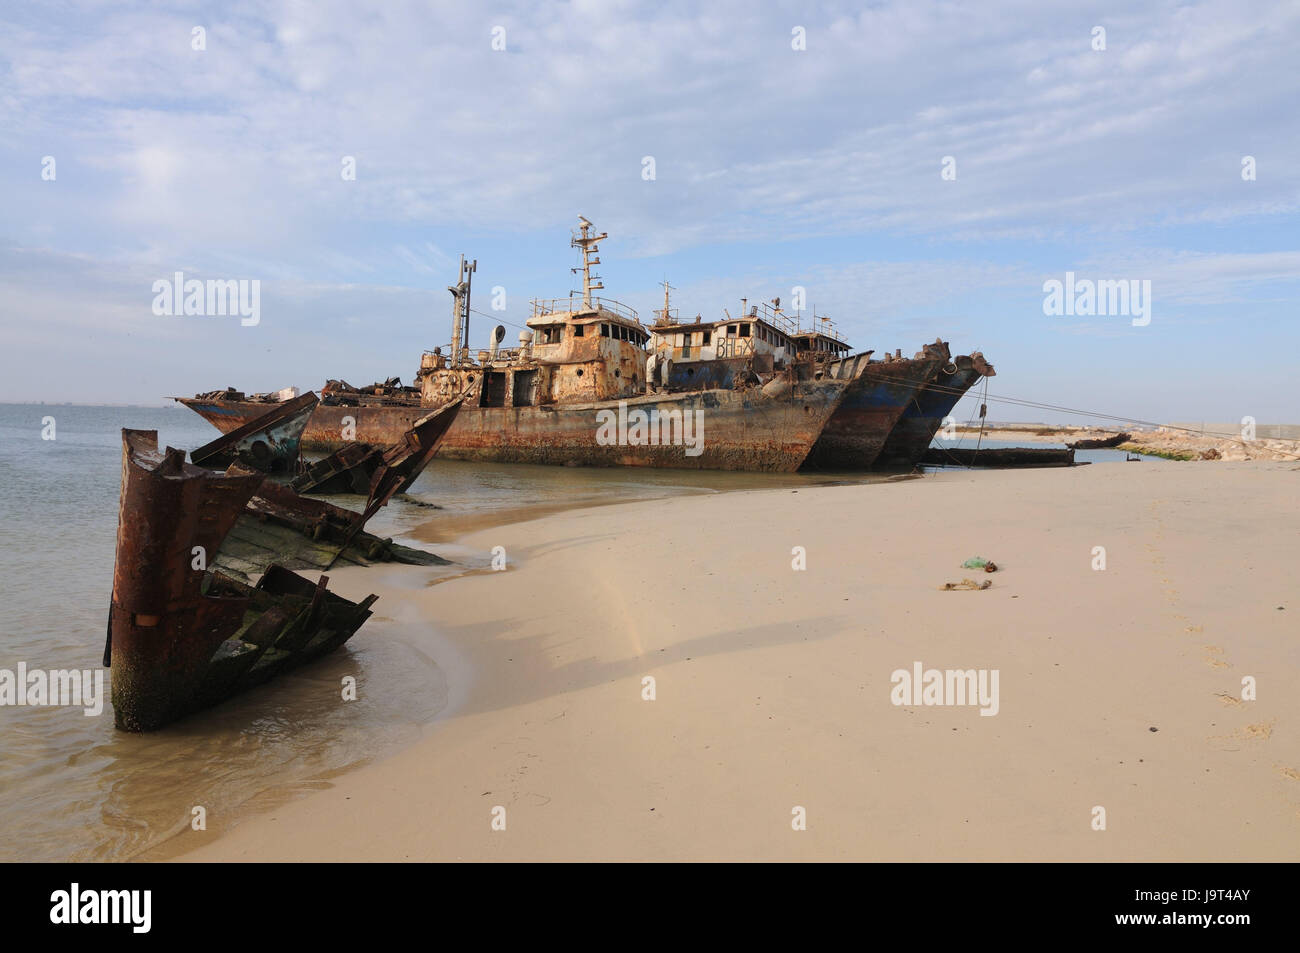 Mauritania,Nouadhibou,Cap Blanc,coast,ship wrecks,stranded,ships,ship cemetery,West Africa,Africa,old,the Atlantic,freighters,sea,navigation,hazy,water,rusts,water,wreck,environmental - Stock Image